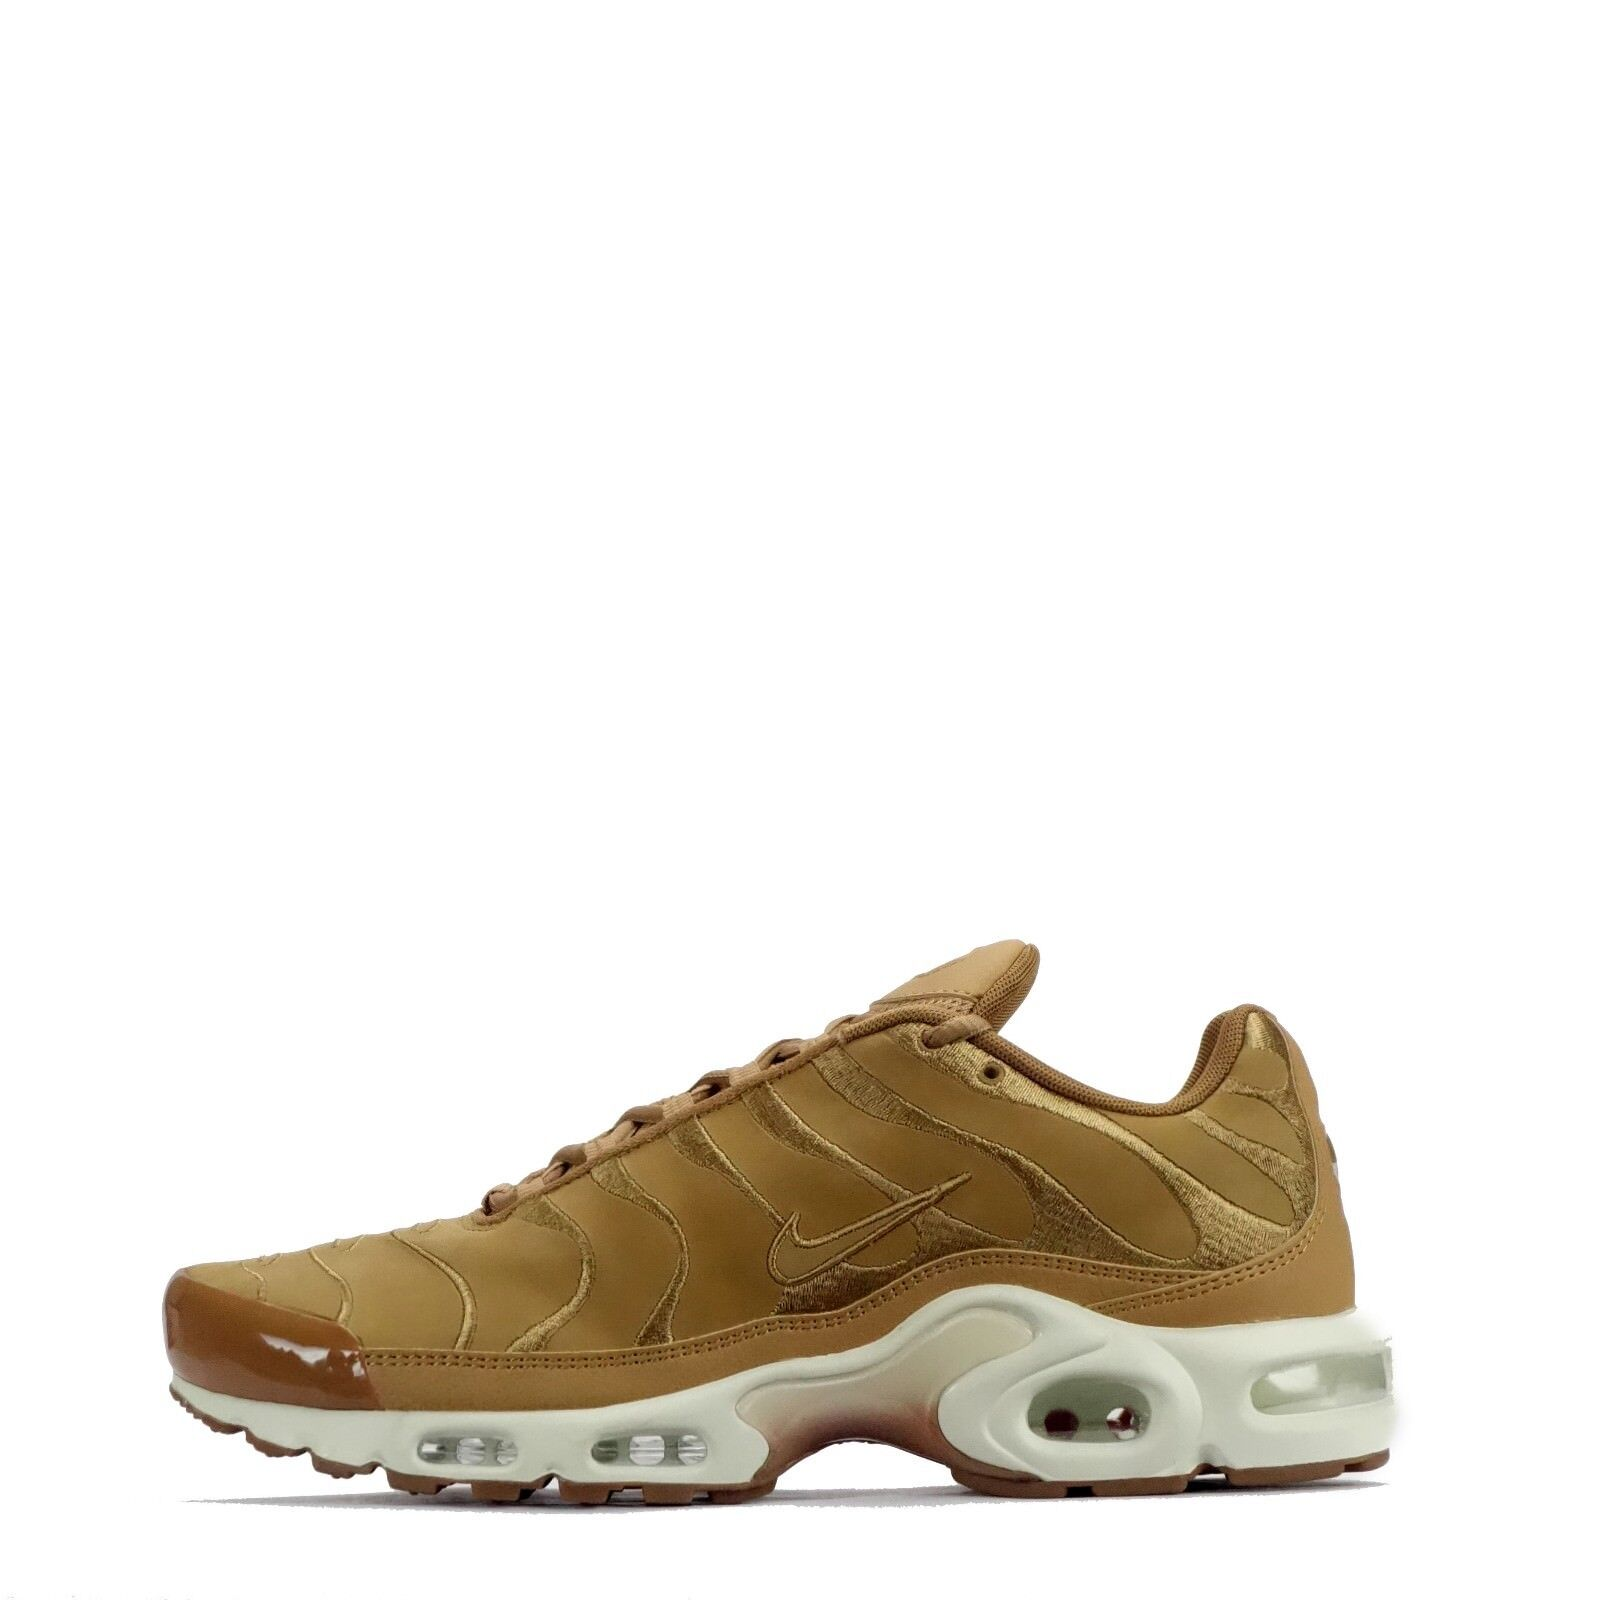 Nike Air Max Plus EF Tuned TN Men's Trainers in Flaux Wheat